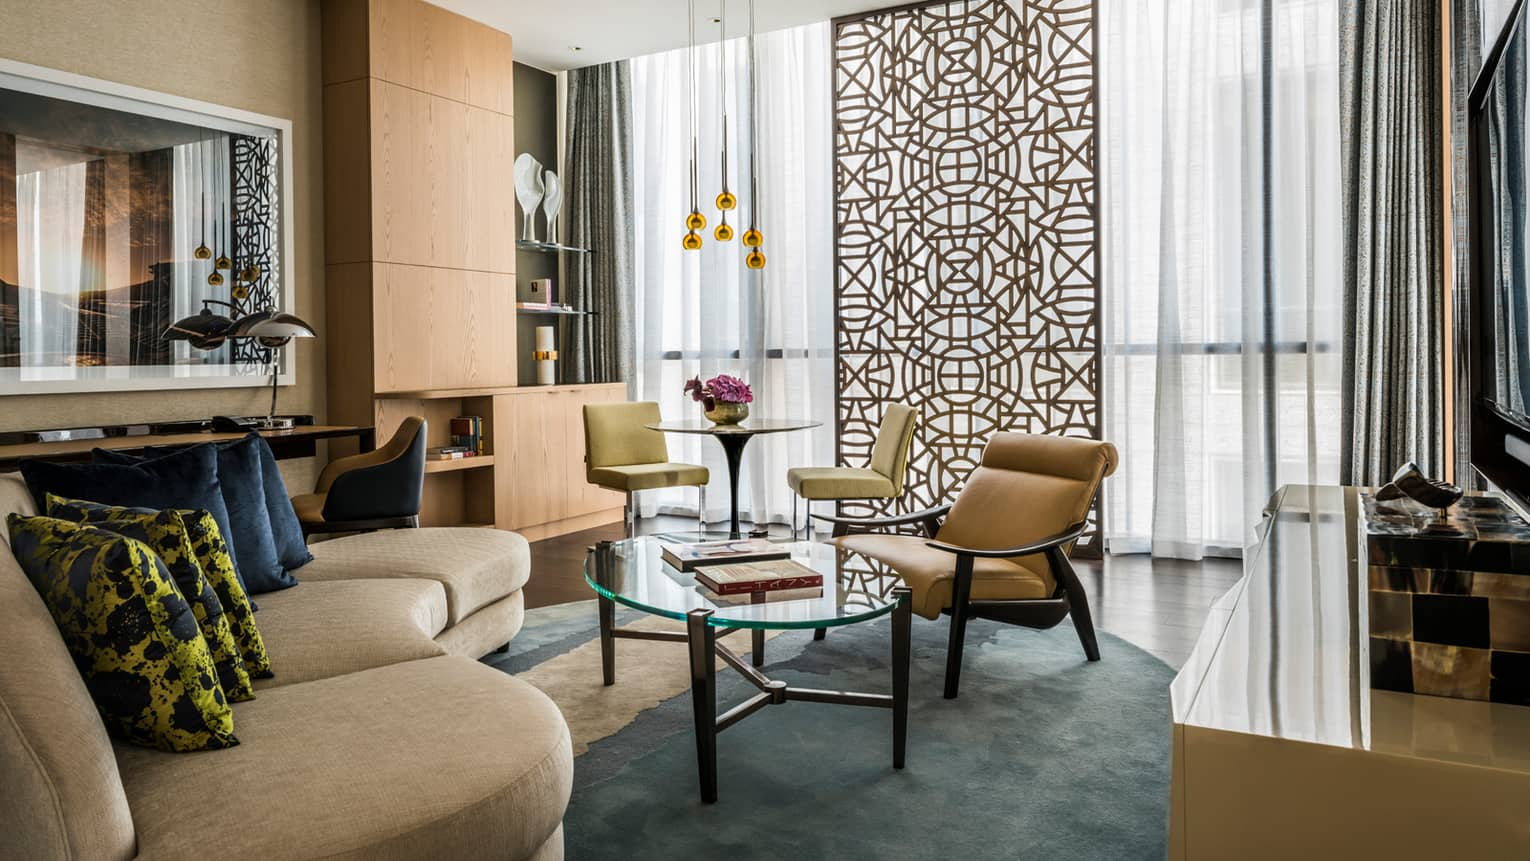 Four Seasons Executive Suite living room with curved sofa, accent pillows, glass coffee table, decorative screen